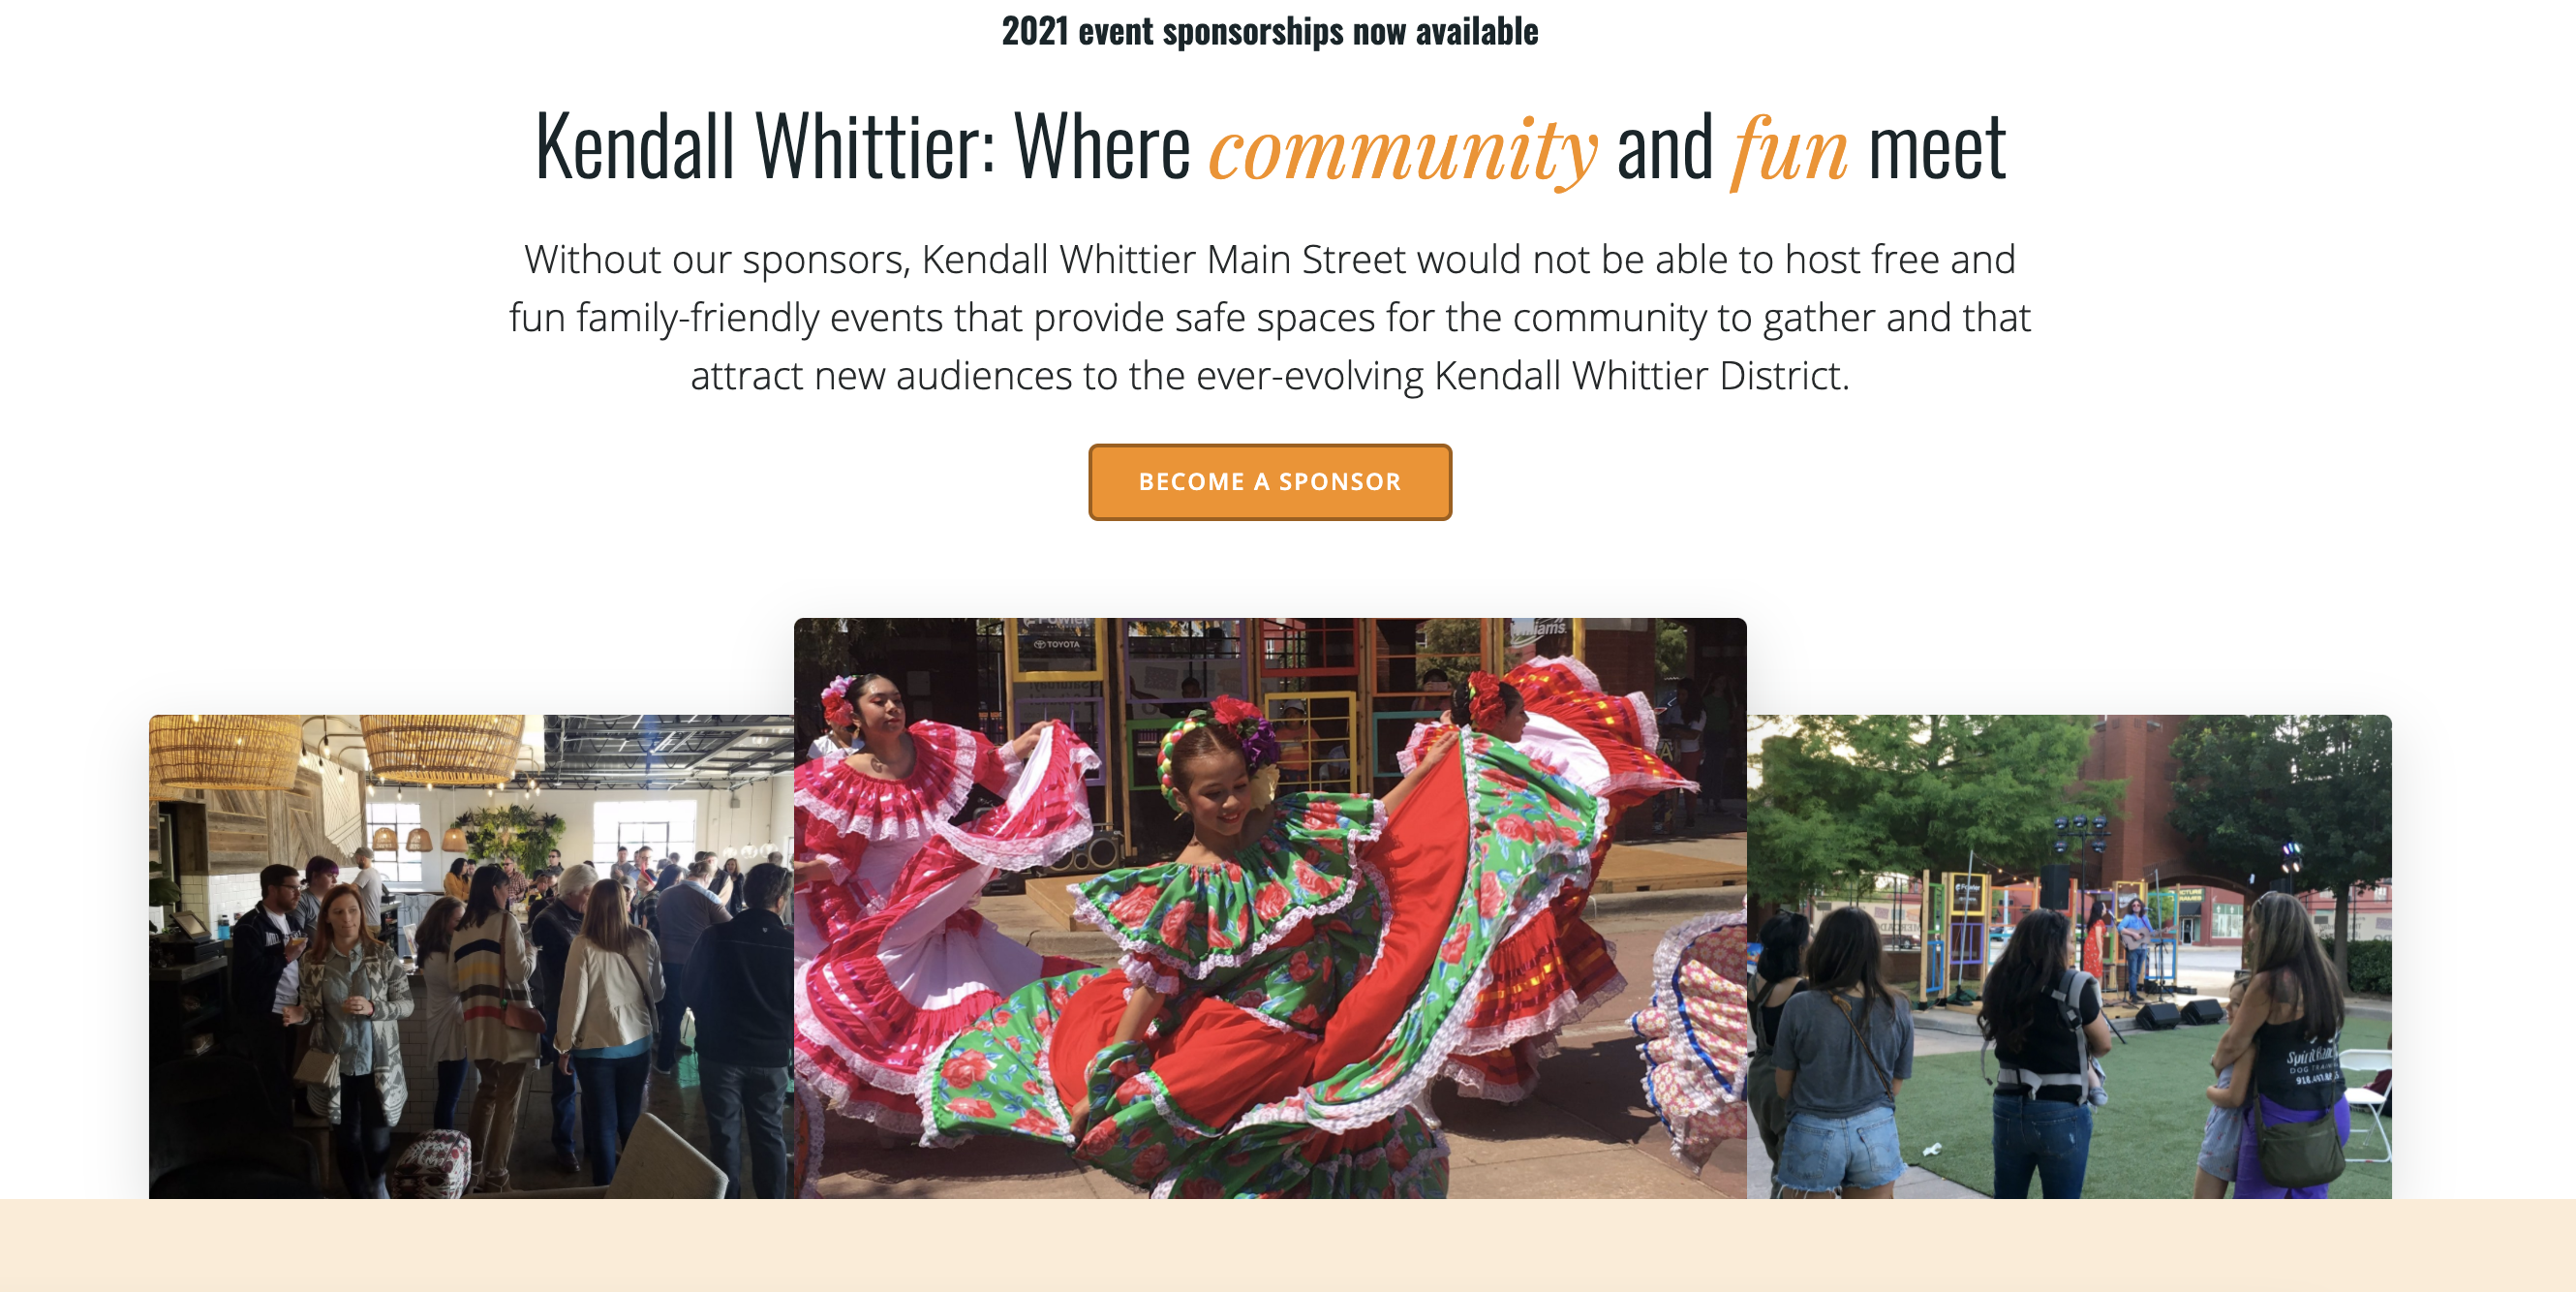 Kendall Whittier seeks sponsors for 2021 events